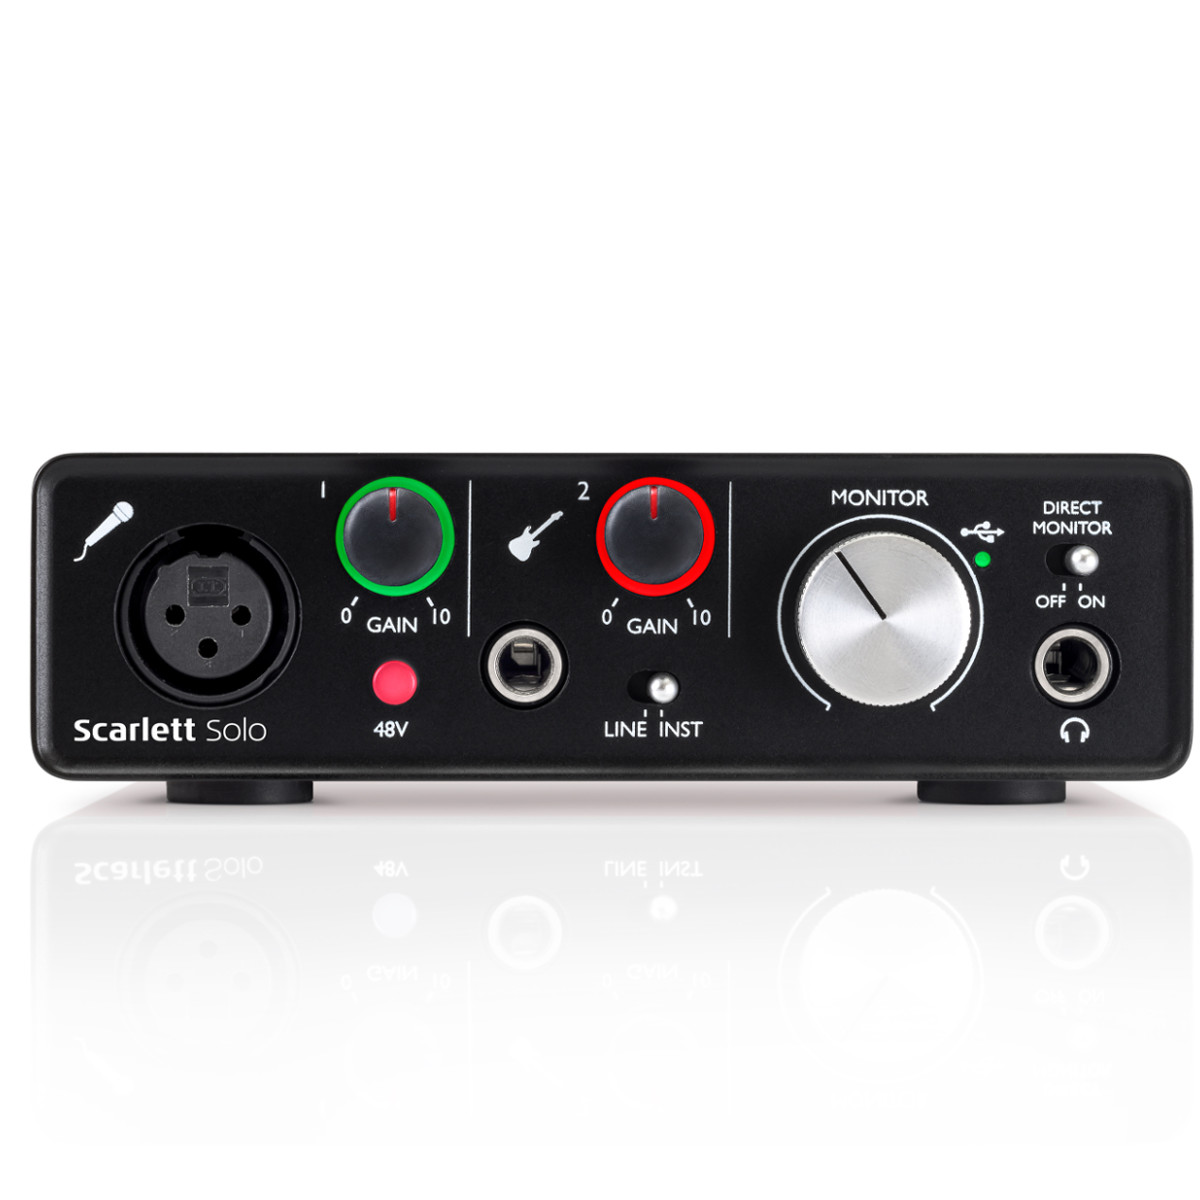 pitbull audio focusrite scarlett solo 2nd gen audio recording interface with pro tools first. Black Bedroom Furniture Sets. Home Design Ideas